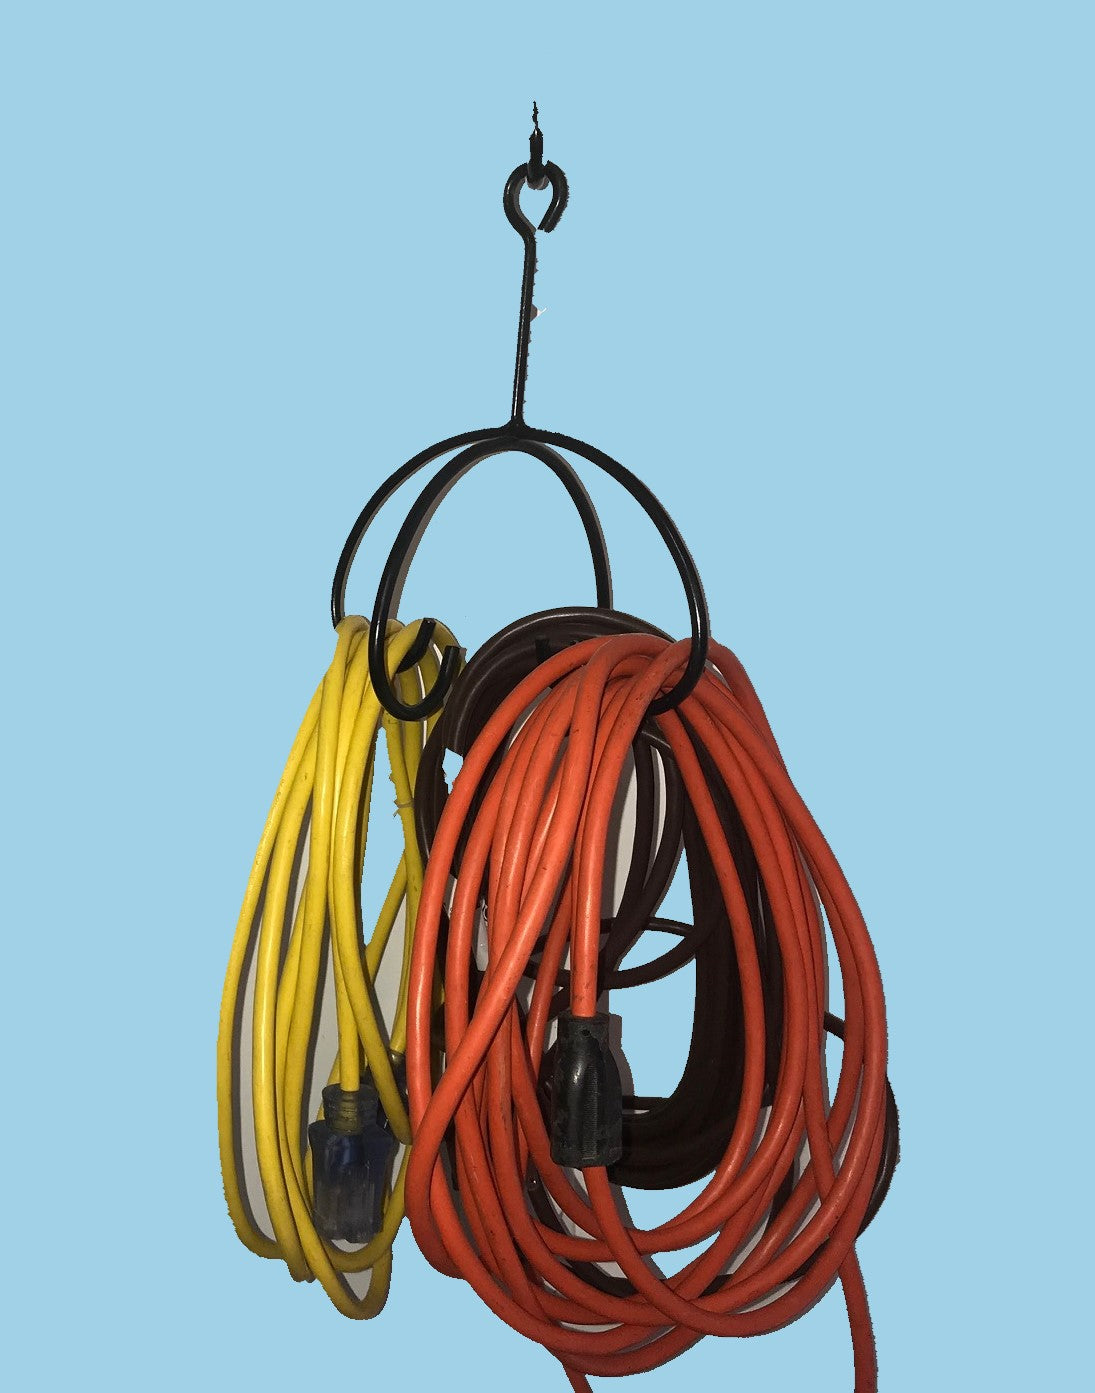 MULTI PURPOSE UTILITY HOOK* BRIDLE HOOK , SAFE TACK HOOK, PLANT HOOK, GARAGE HOOK